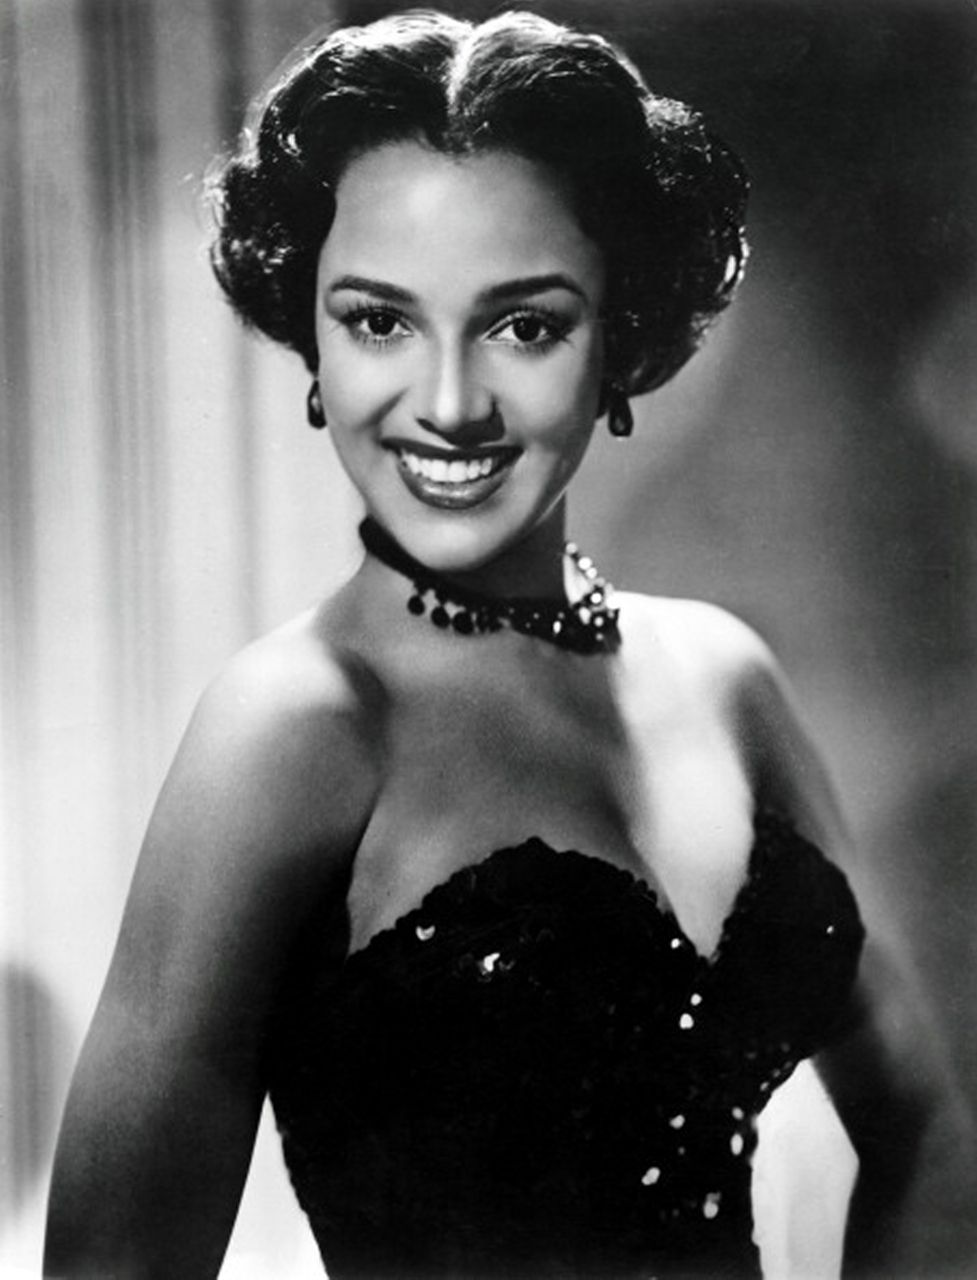 dorothy dandridge For 20 years, the my hero project has been using media to celebrate the best of humanity.